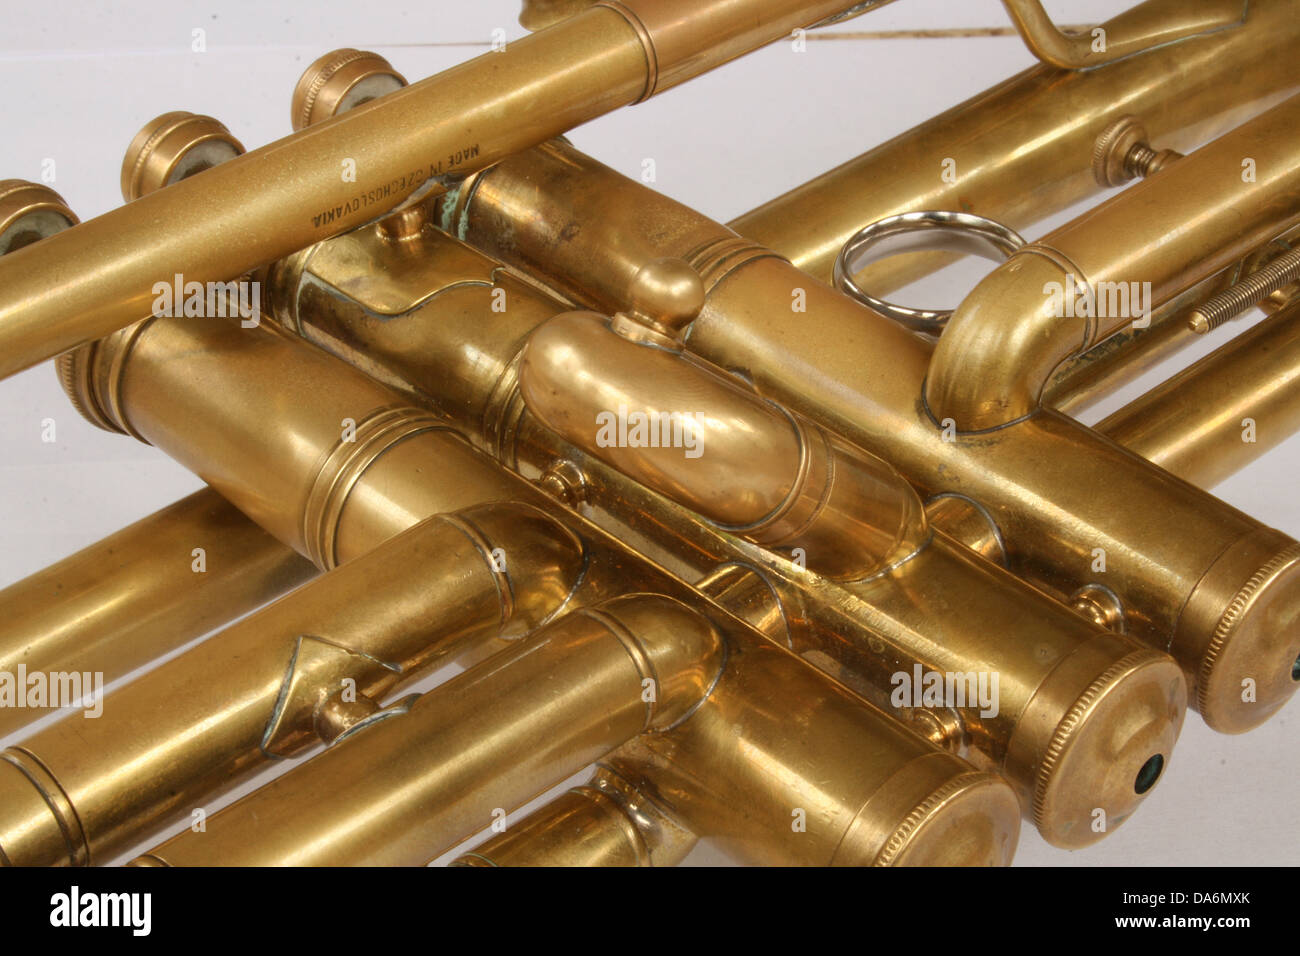 The valves and tubes of a vintage brass trumpet Stock Photo ...